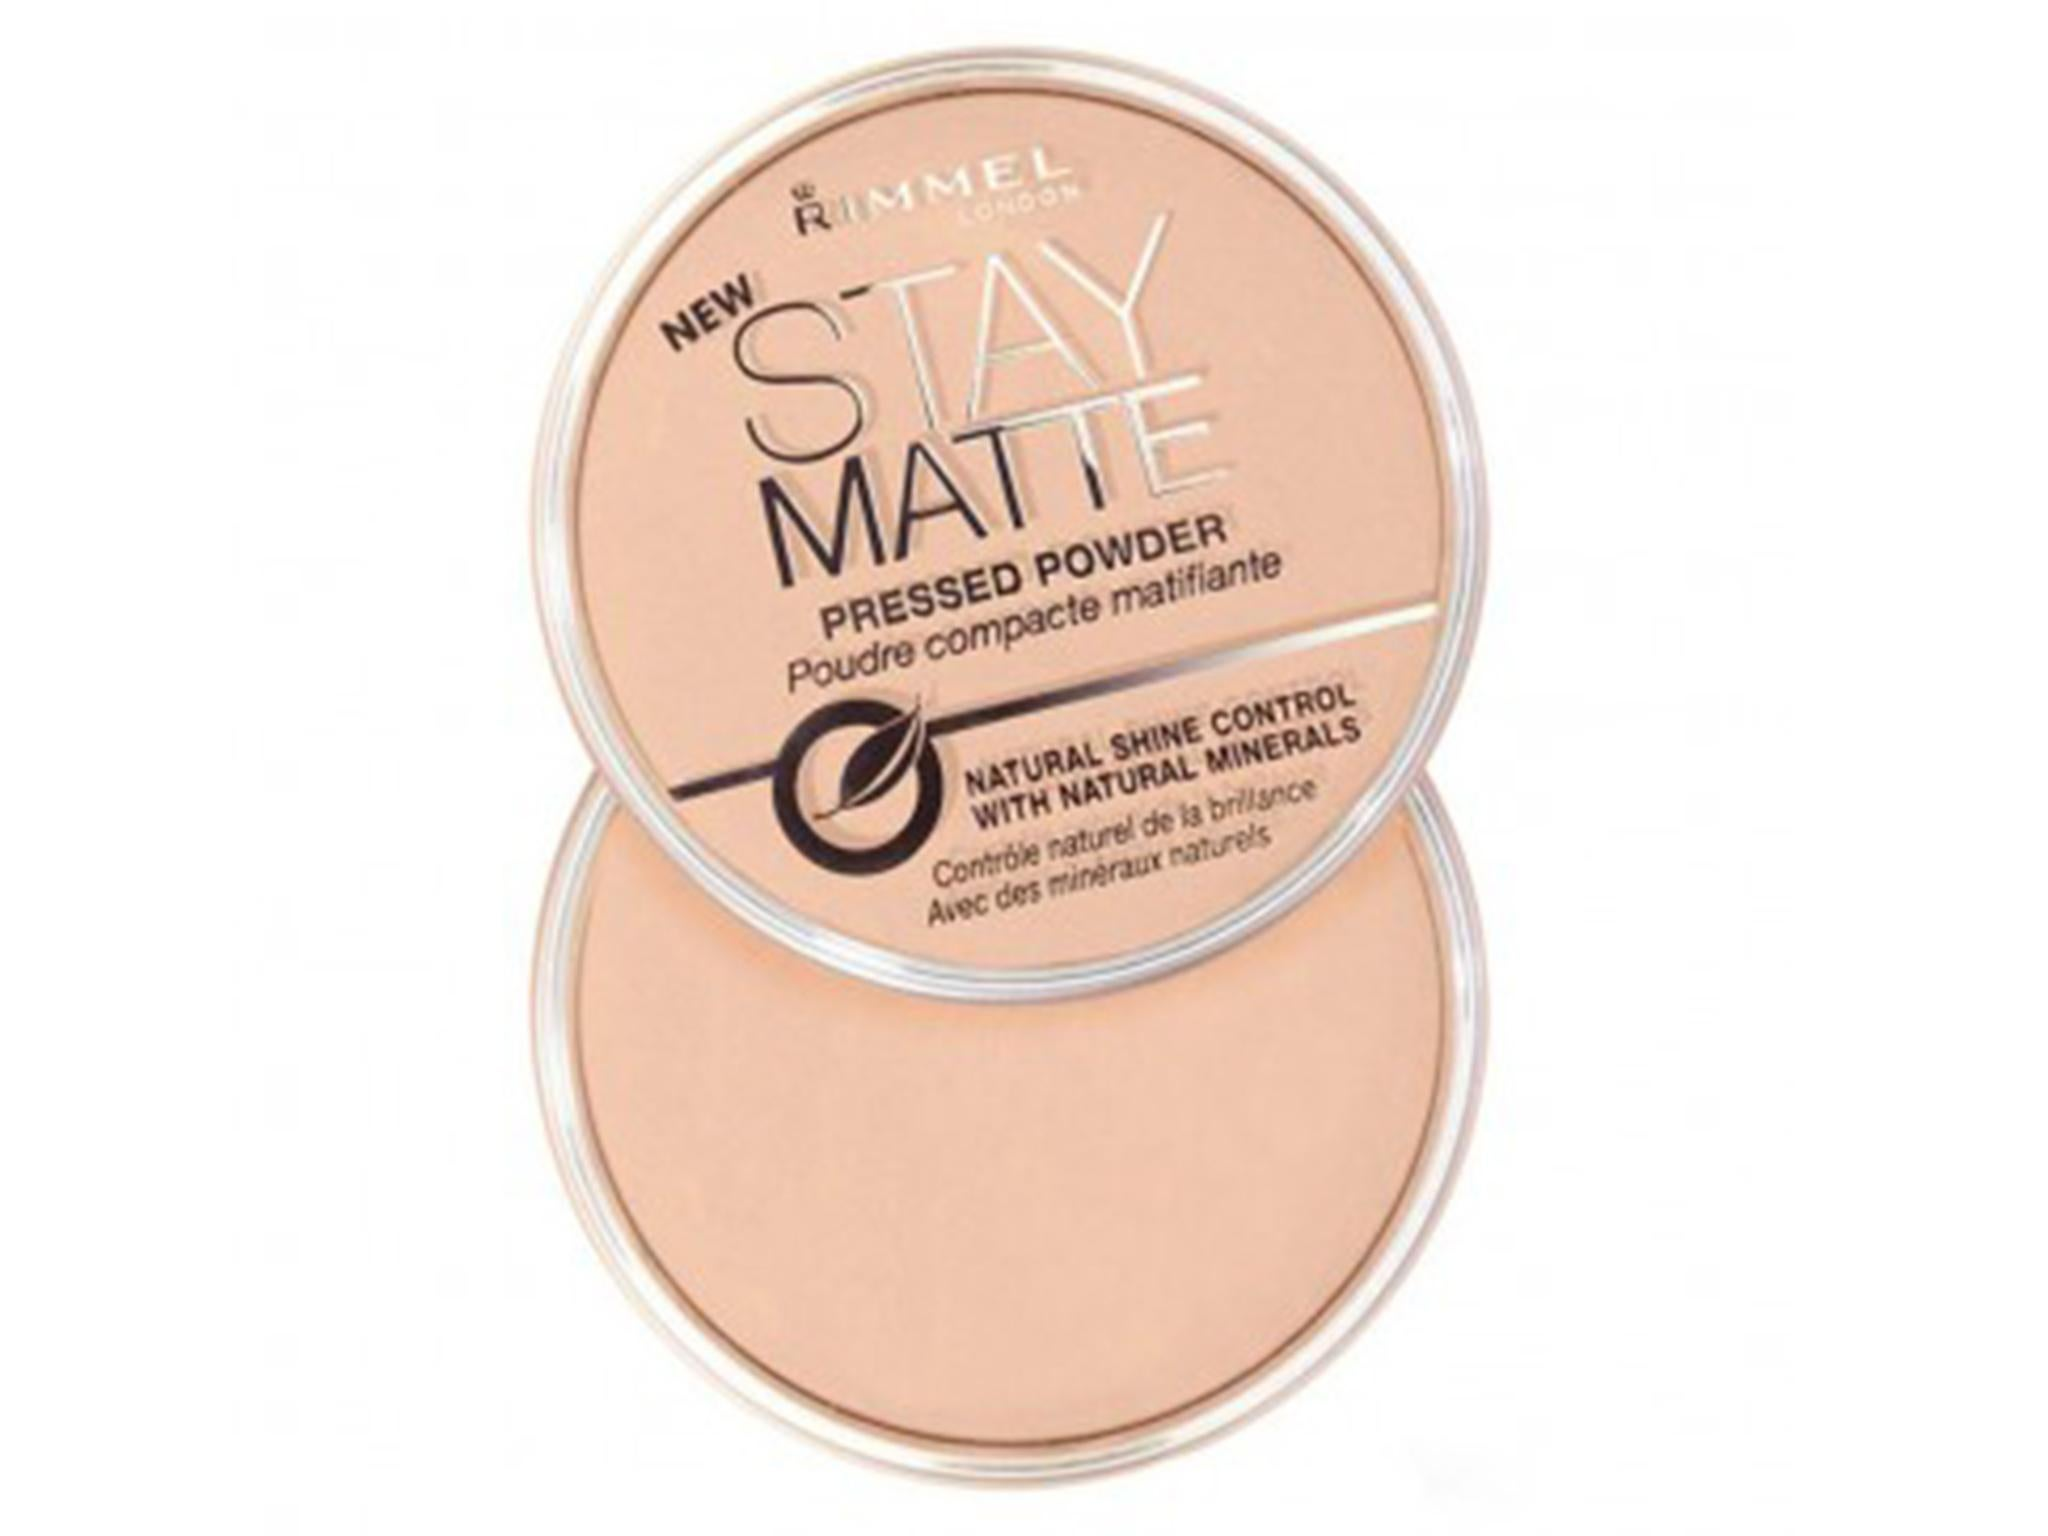 10 best finishing powders | The Independent